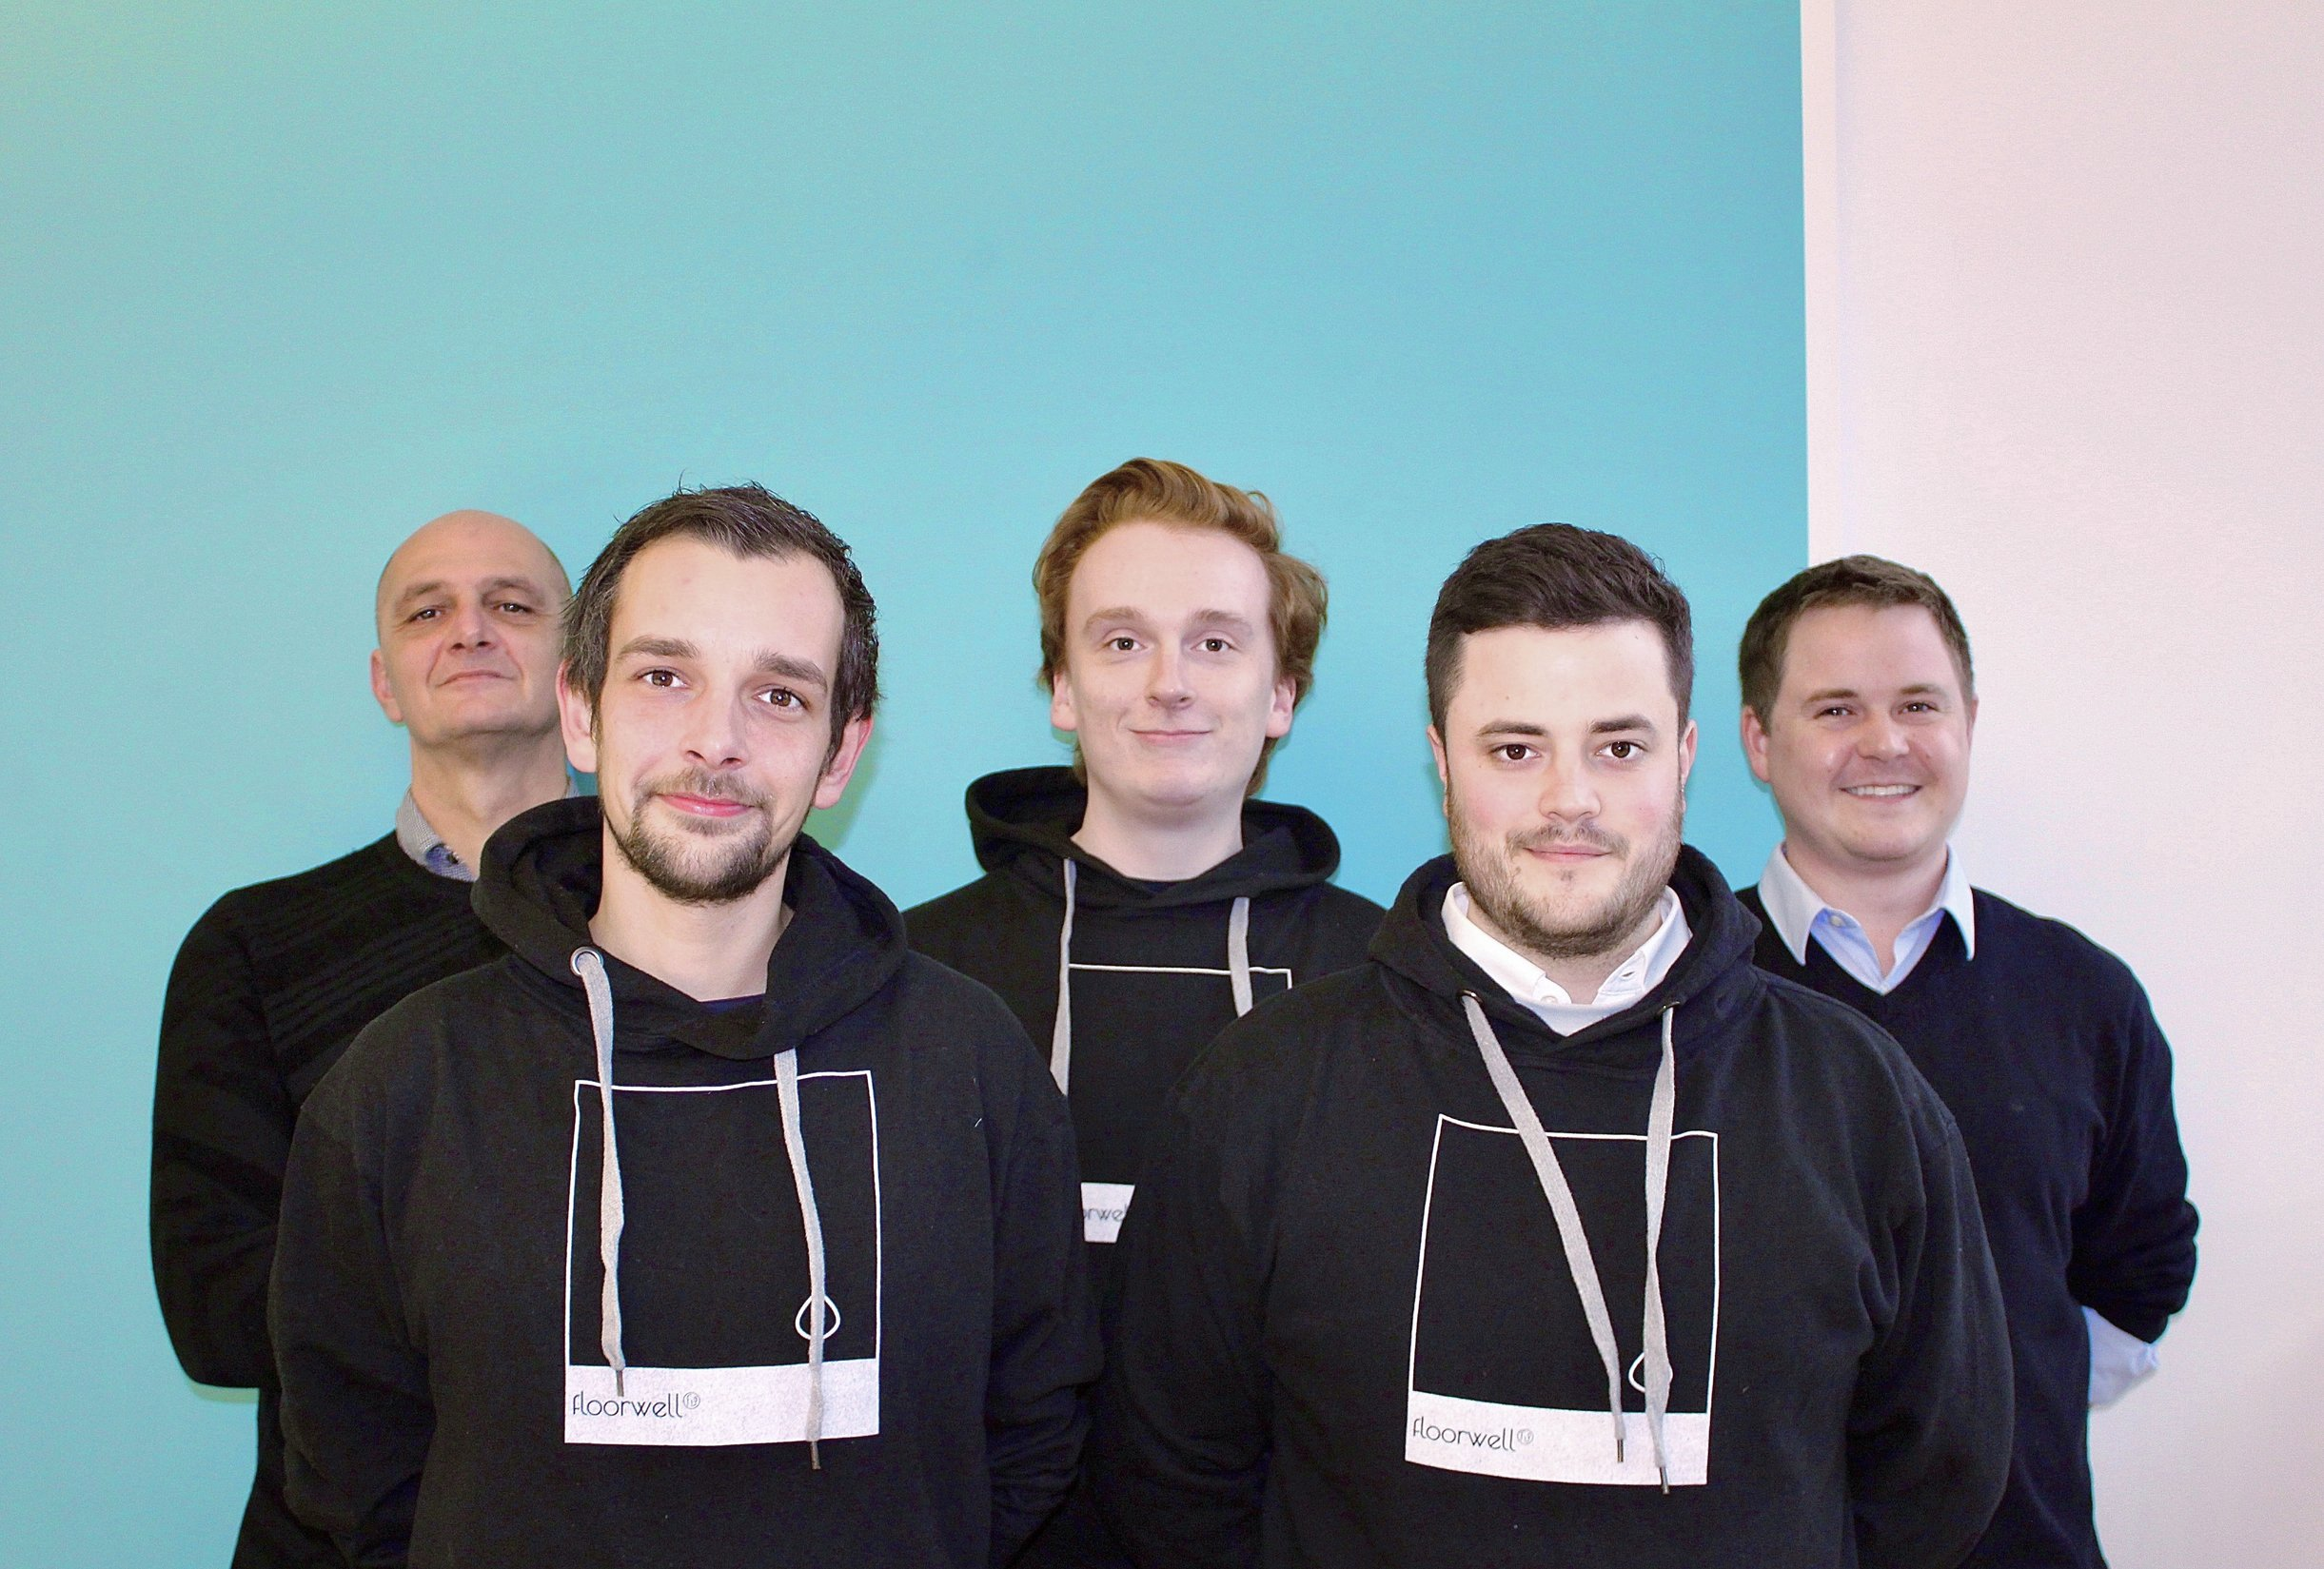 Floorwell Operations Team Gruppenfoto